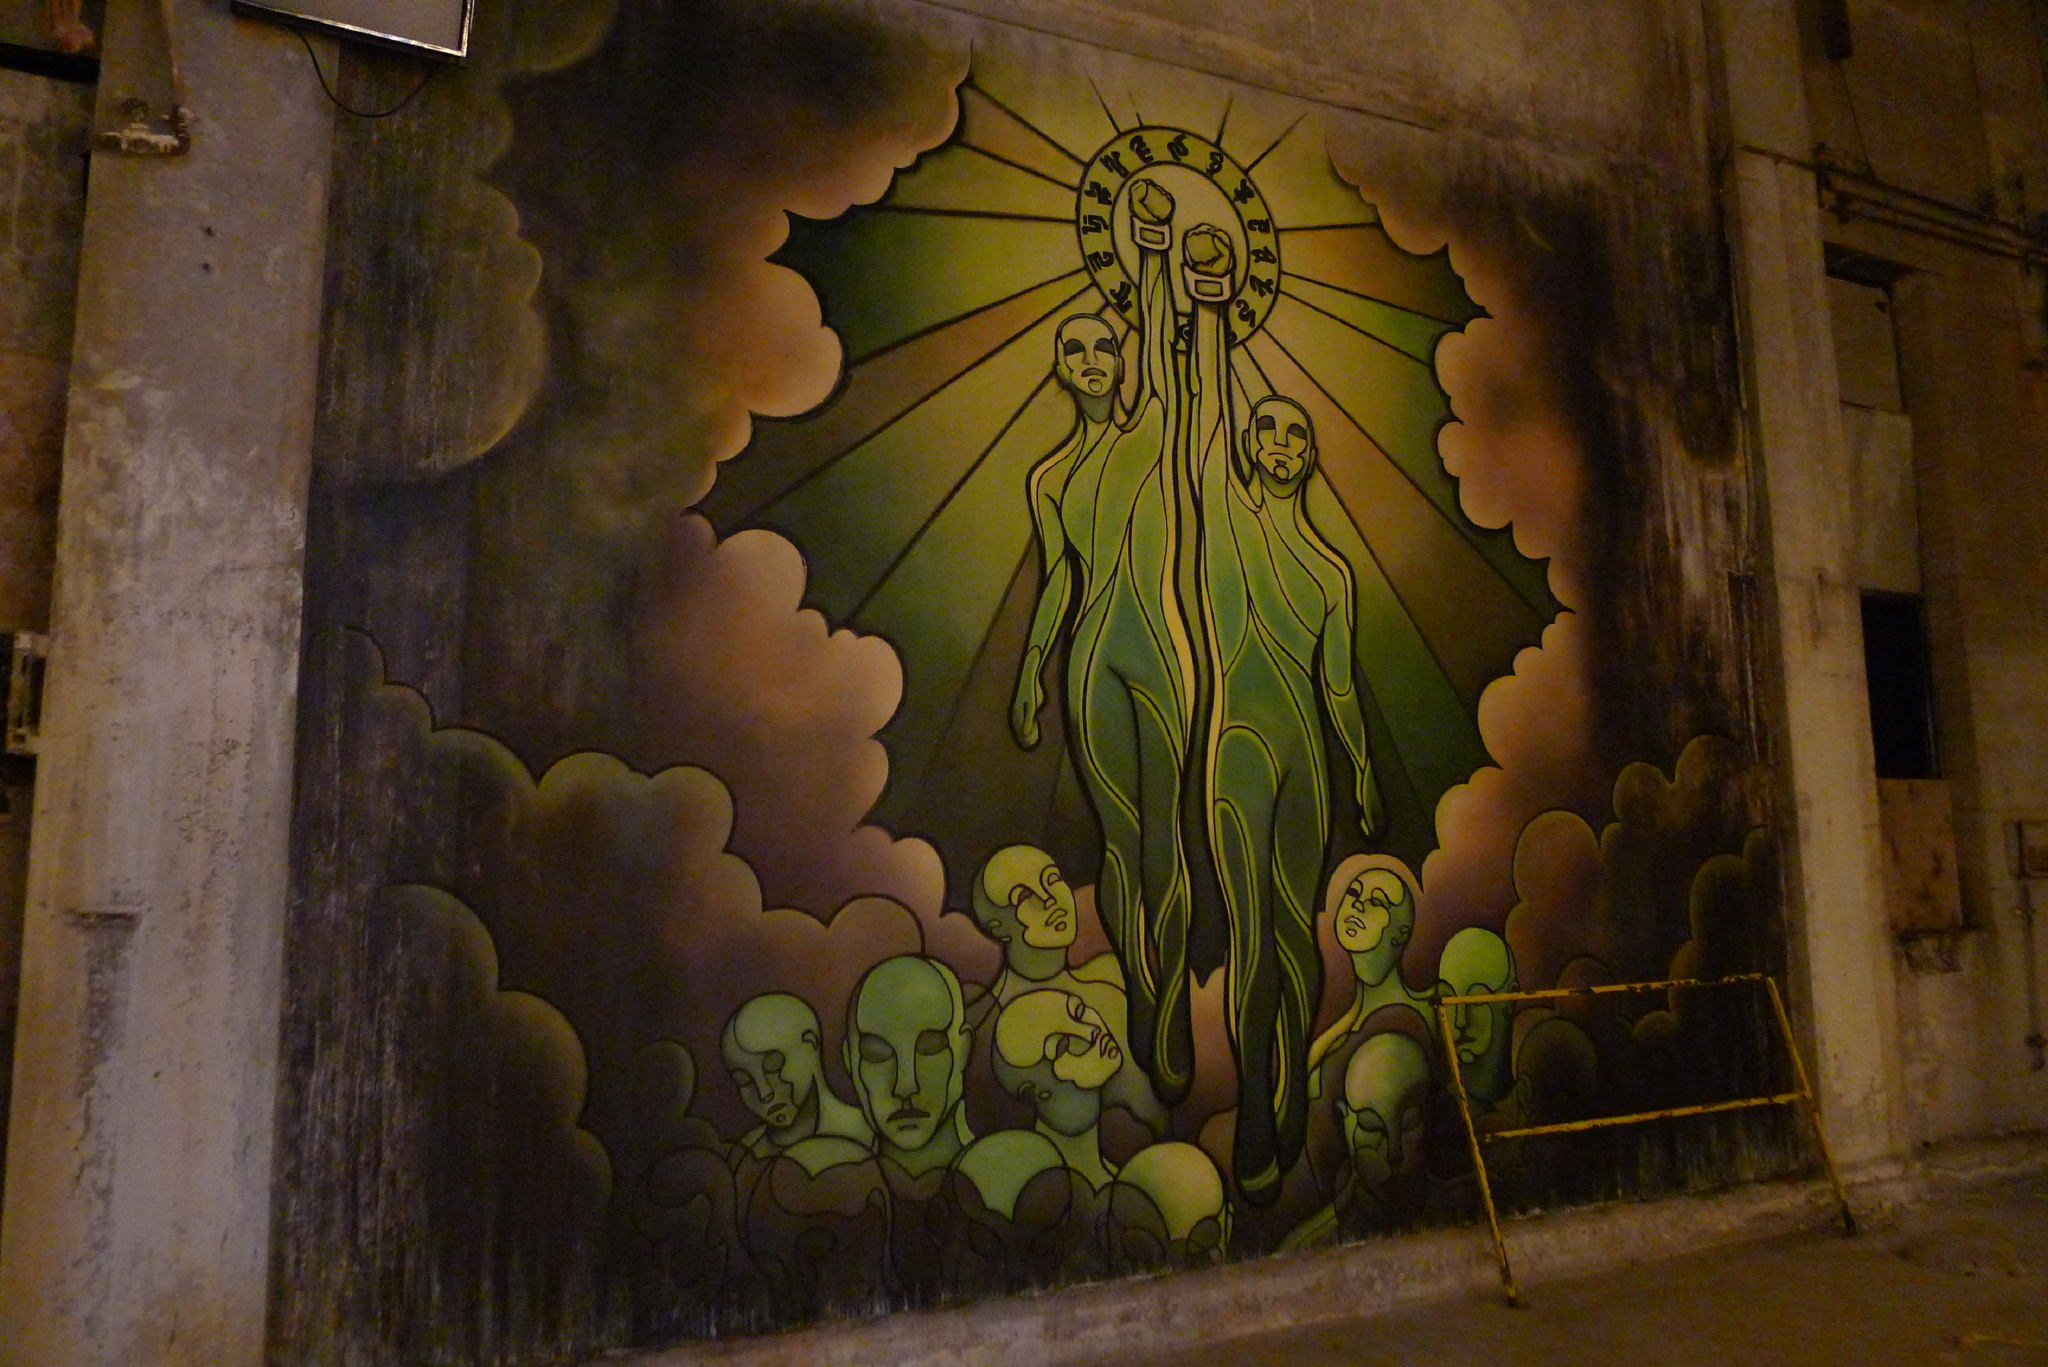 I was very interested in exploring the mythos and identity of the zombies. We determined they were proud of who they are while acknowledging their tumultuous beginnings. So we created a Zombie social realism that celebrated their story. I worked with artist Aurora Kruk to realize this idea. This mural celebrates the zombie renaissance.